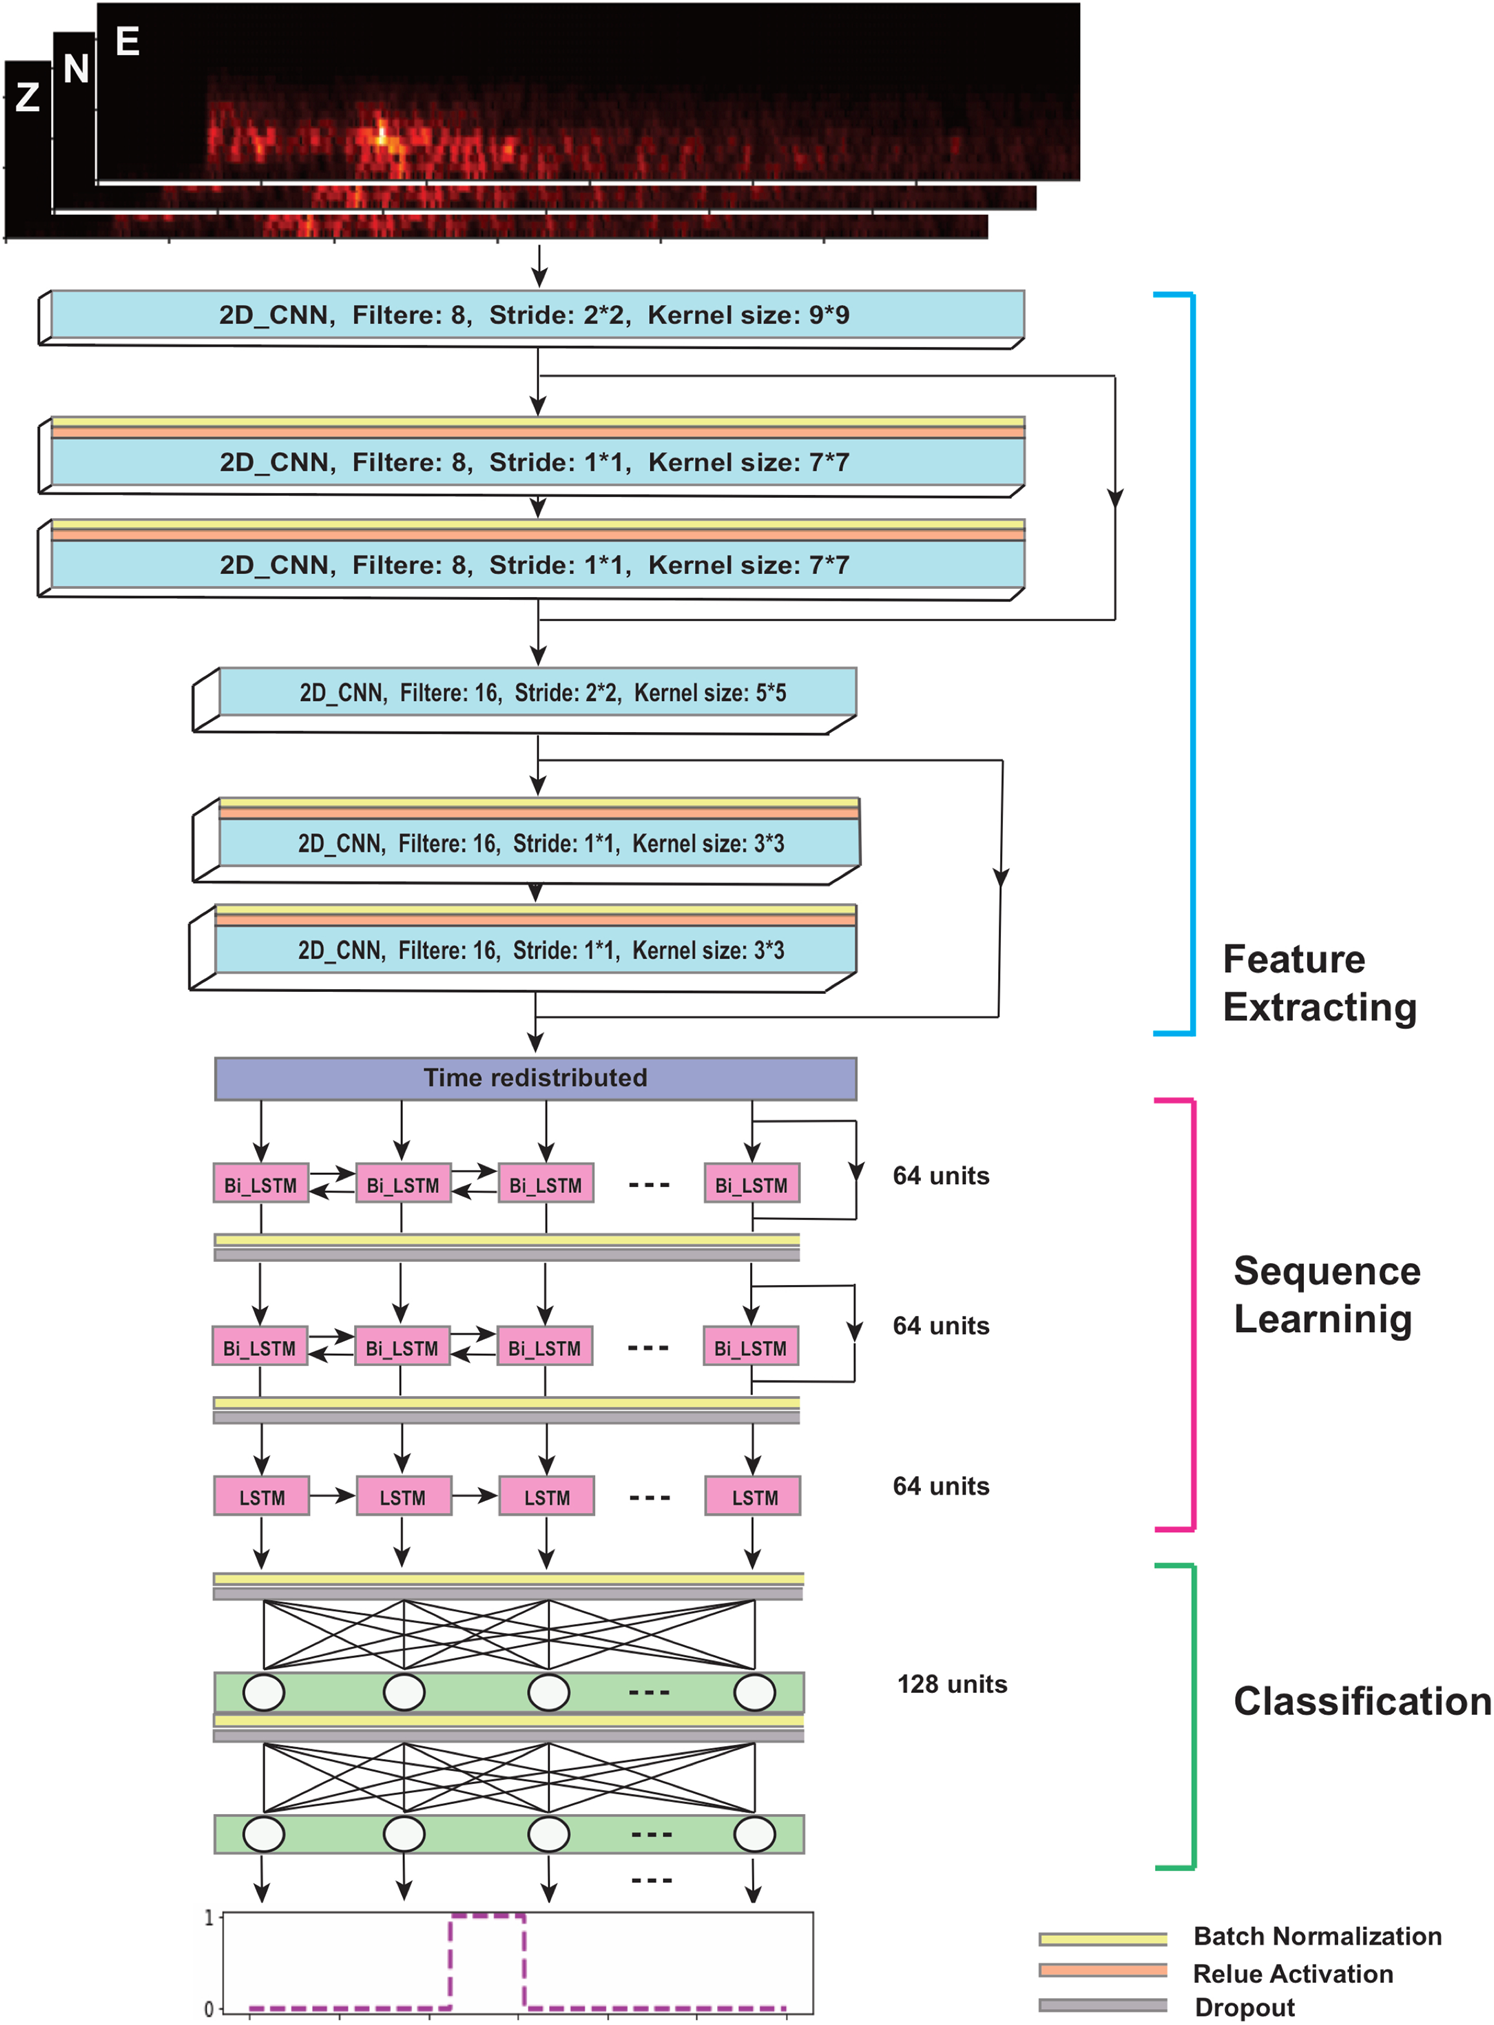 CRED: A Deep Residual Network of Convolutional and Recurrent